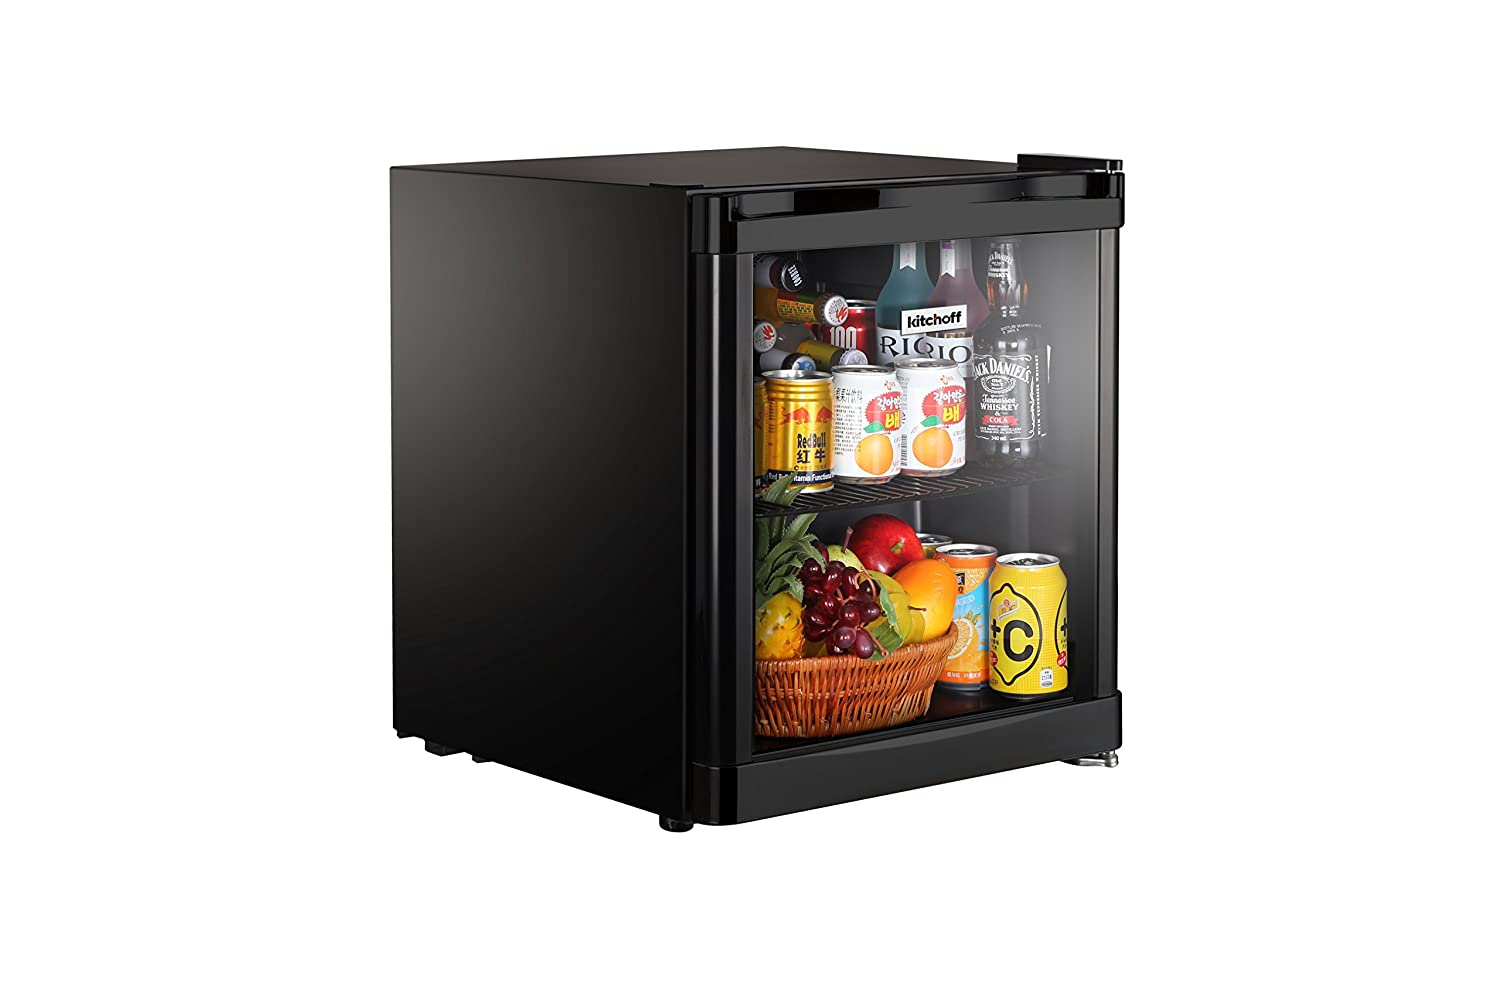 tiny refrigerator office. Shopping Tadka Kitchoff 50 Litre Mini Refrigerator With Glass Door For Office And Home, Black: Amazon.in: Home \u0026 Kitchen Tiny P